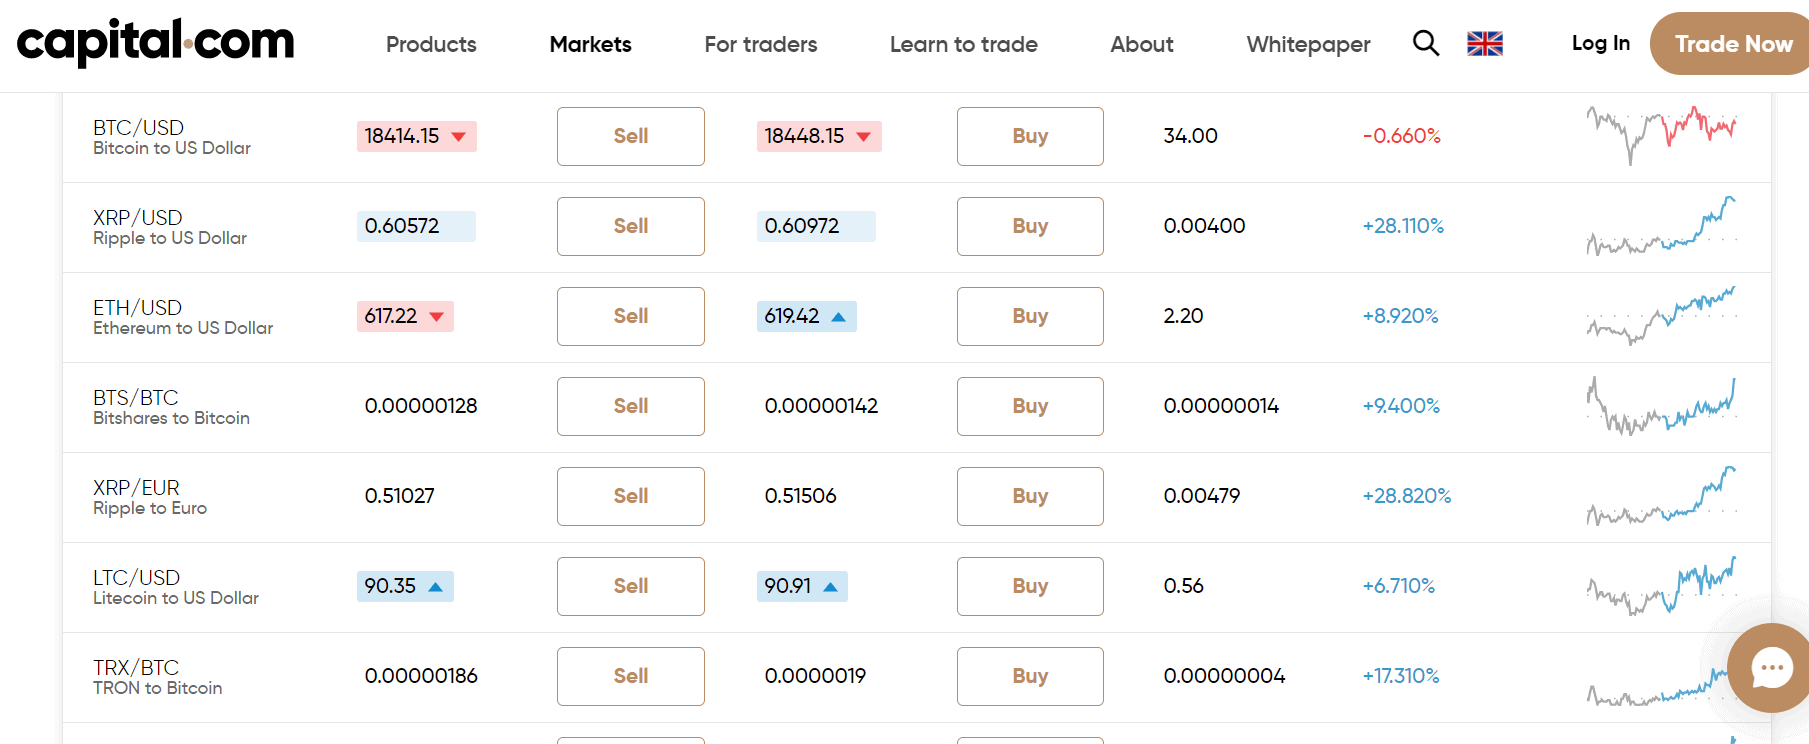 cryptocurrency trading at Capital.com